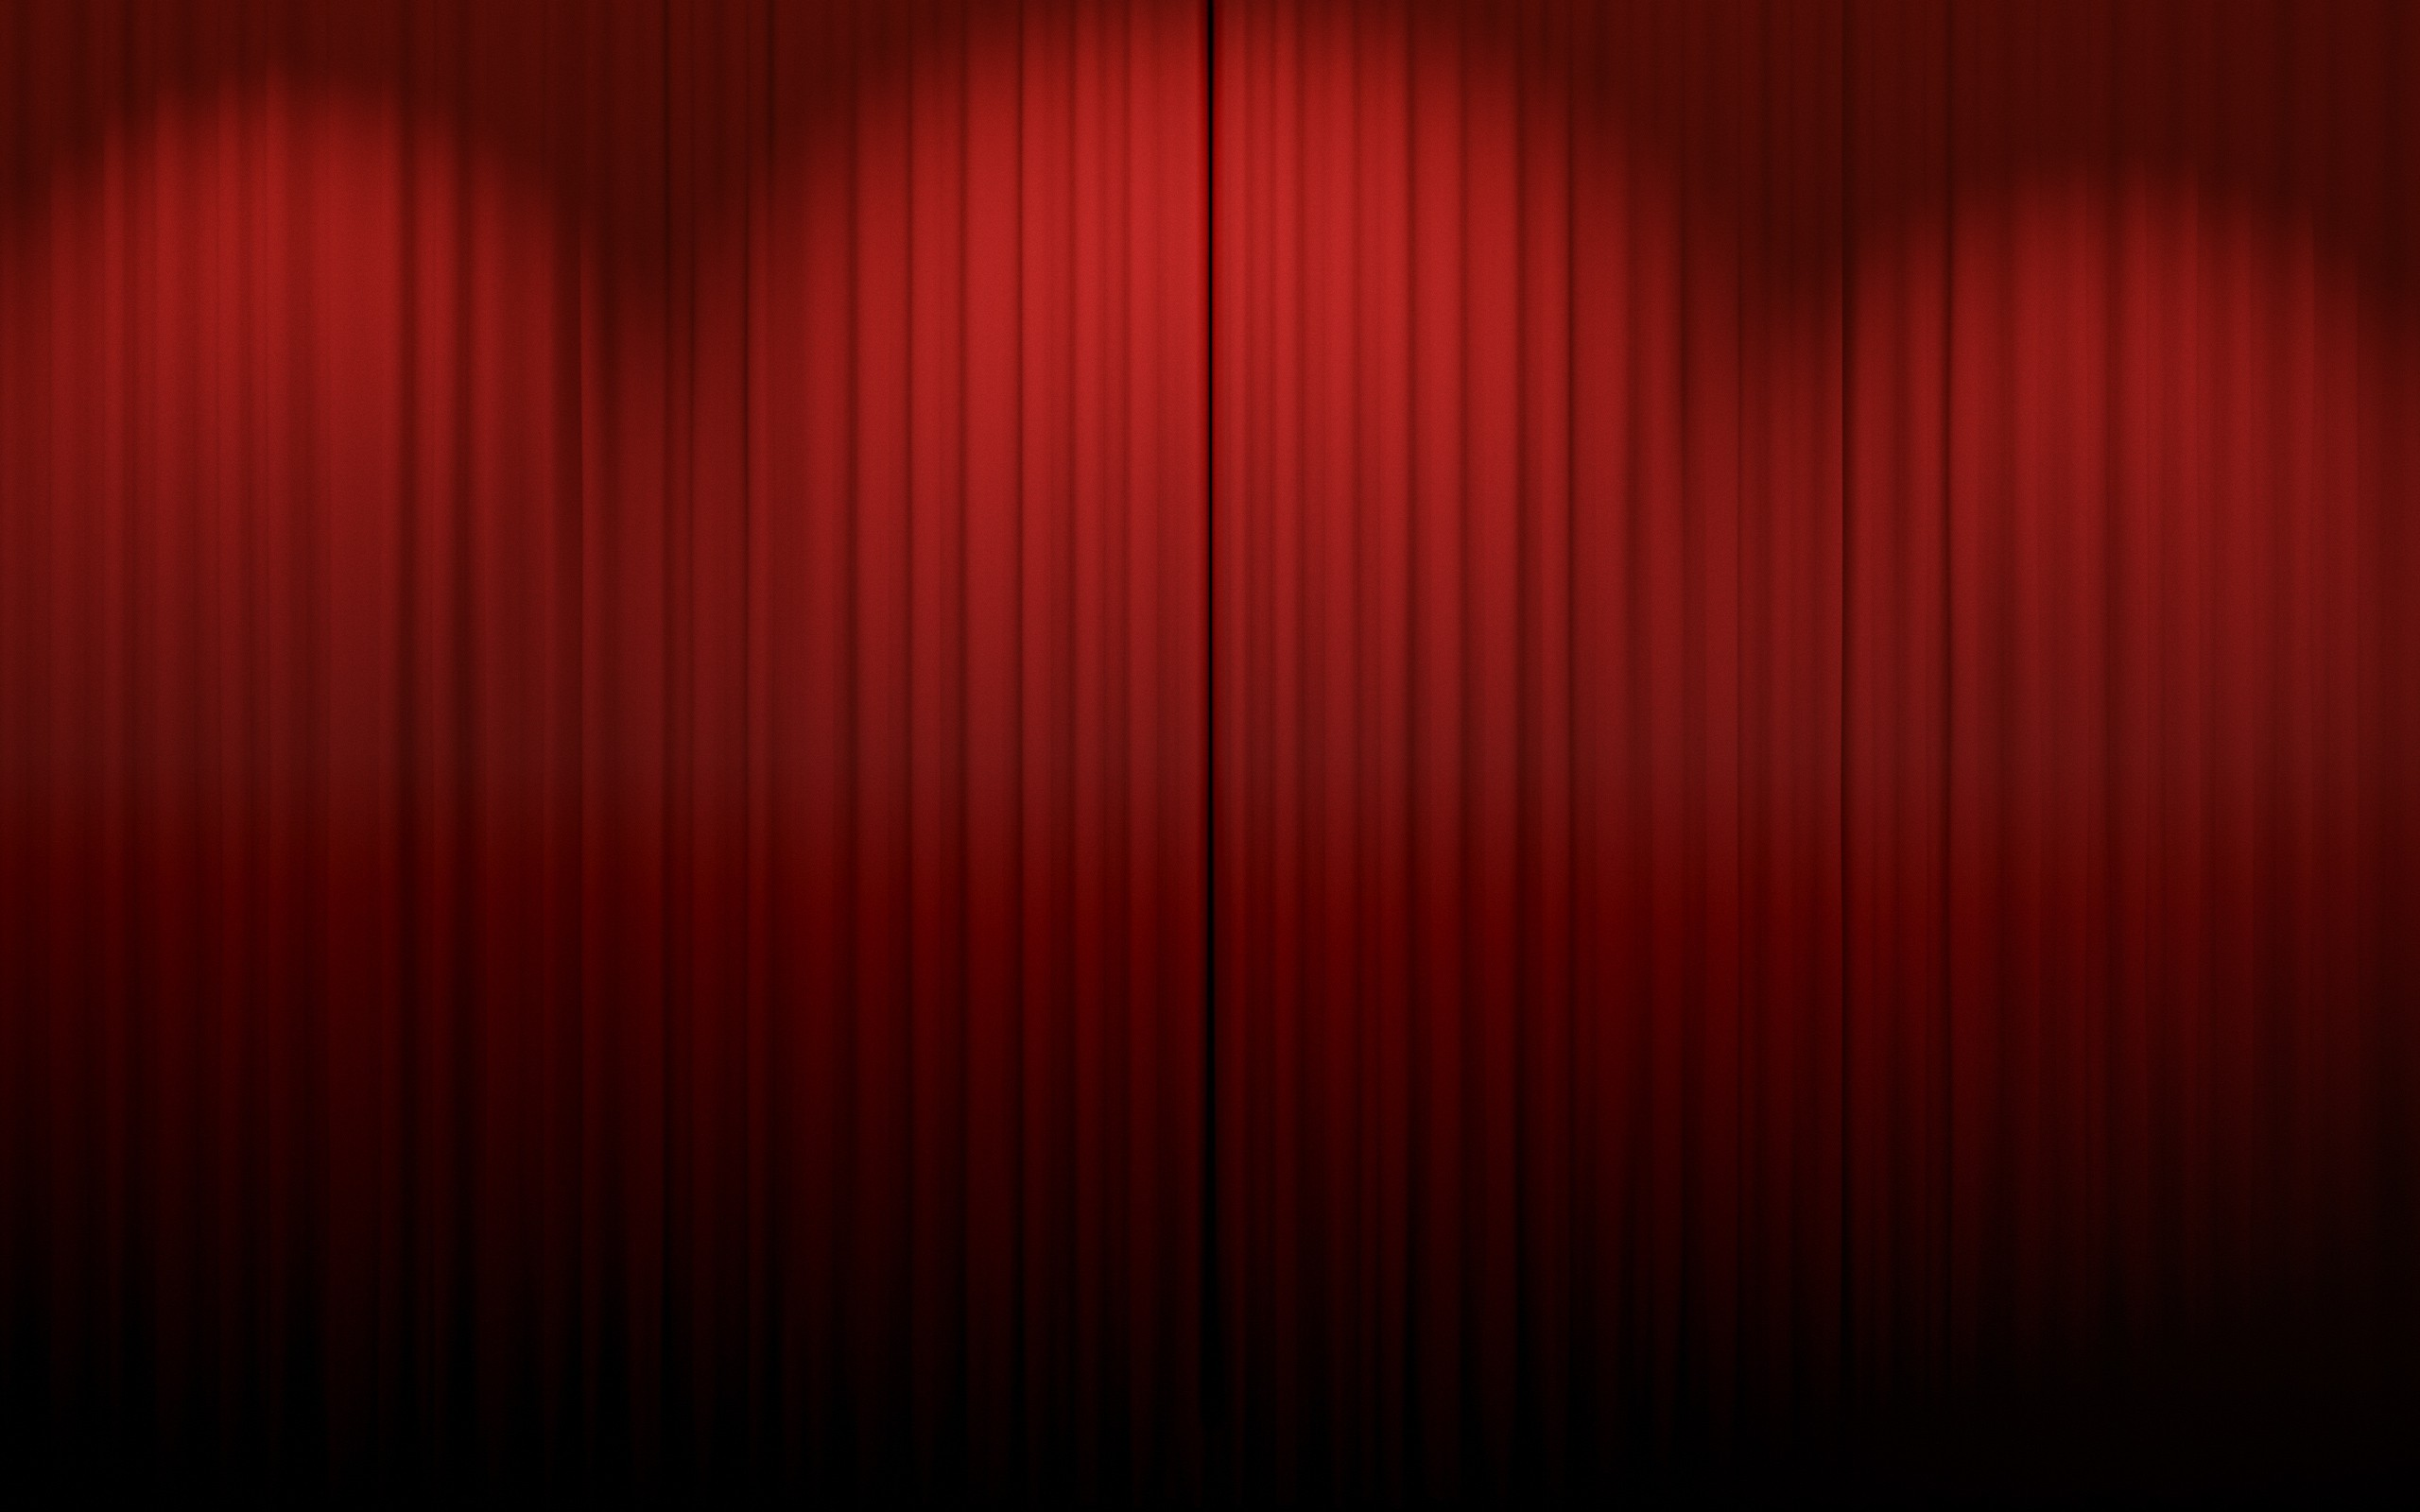 White curtain wallpaper - Red Curtains Wallpaper 2560x1600 Red Curtains Theatre Scenario